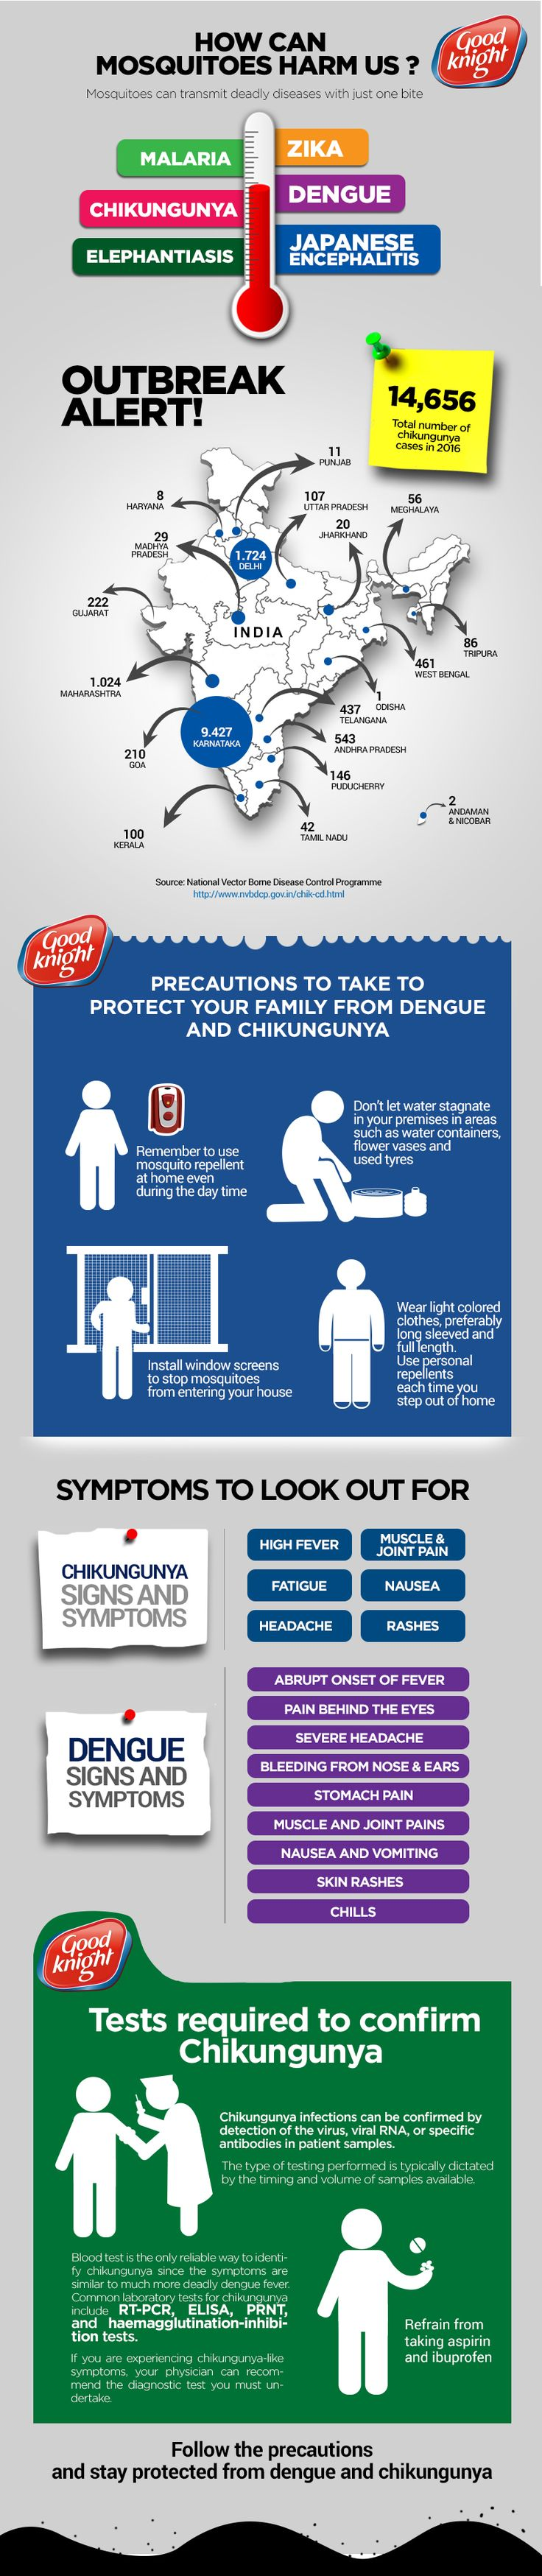 The infographic provides detailed information on you how to prevent your family from mosquito bites. #dengue #chikungunya #healthyliving